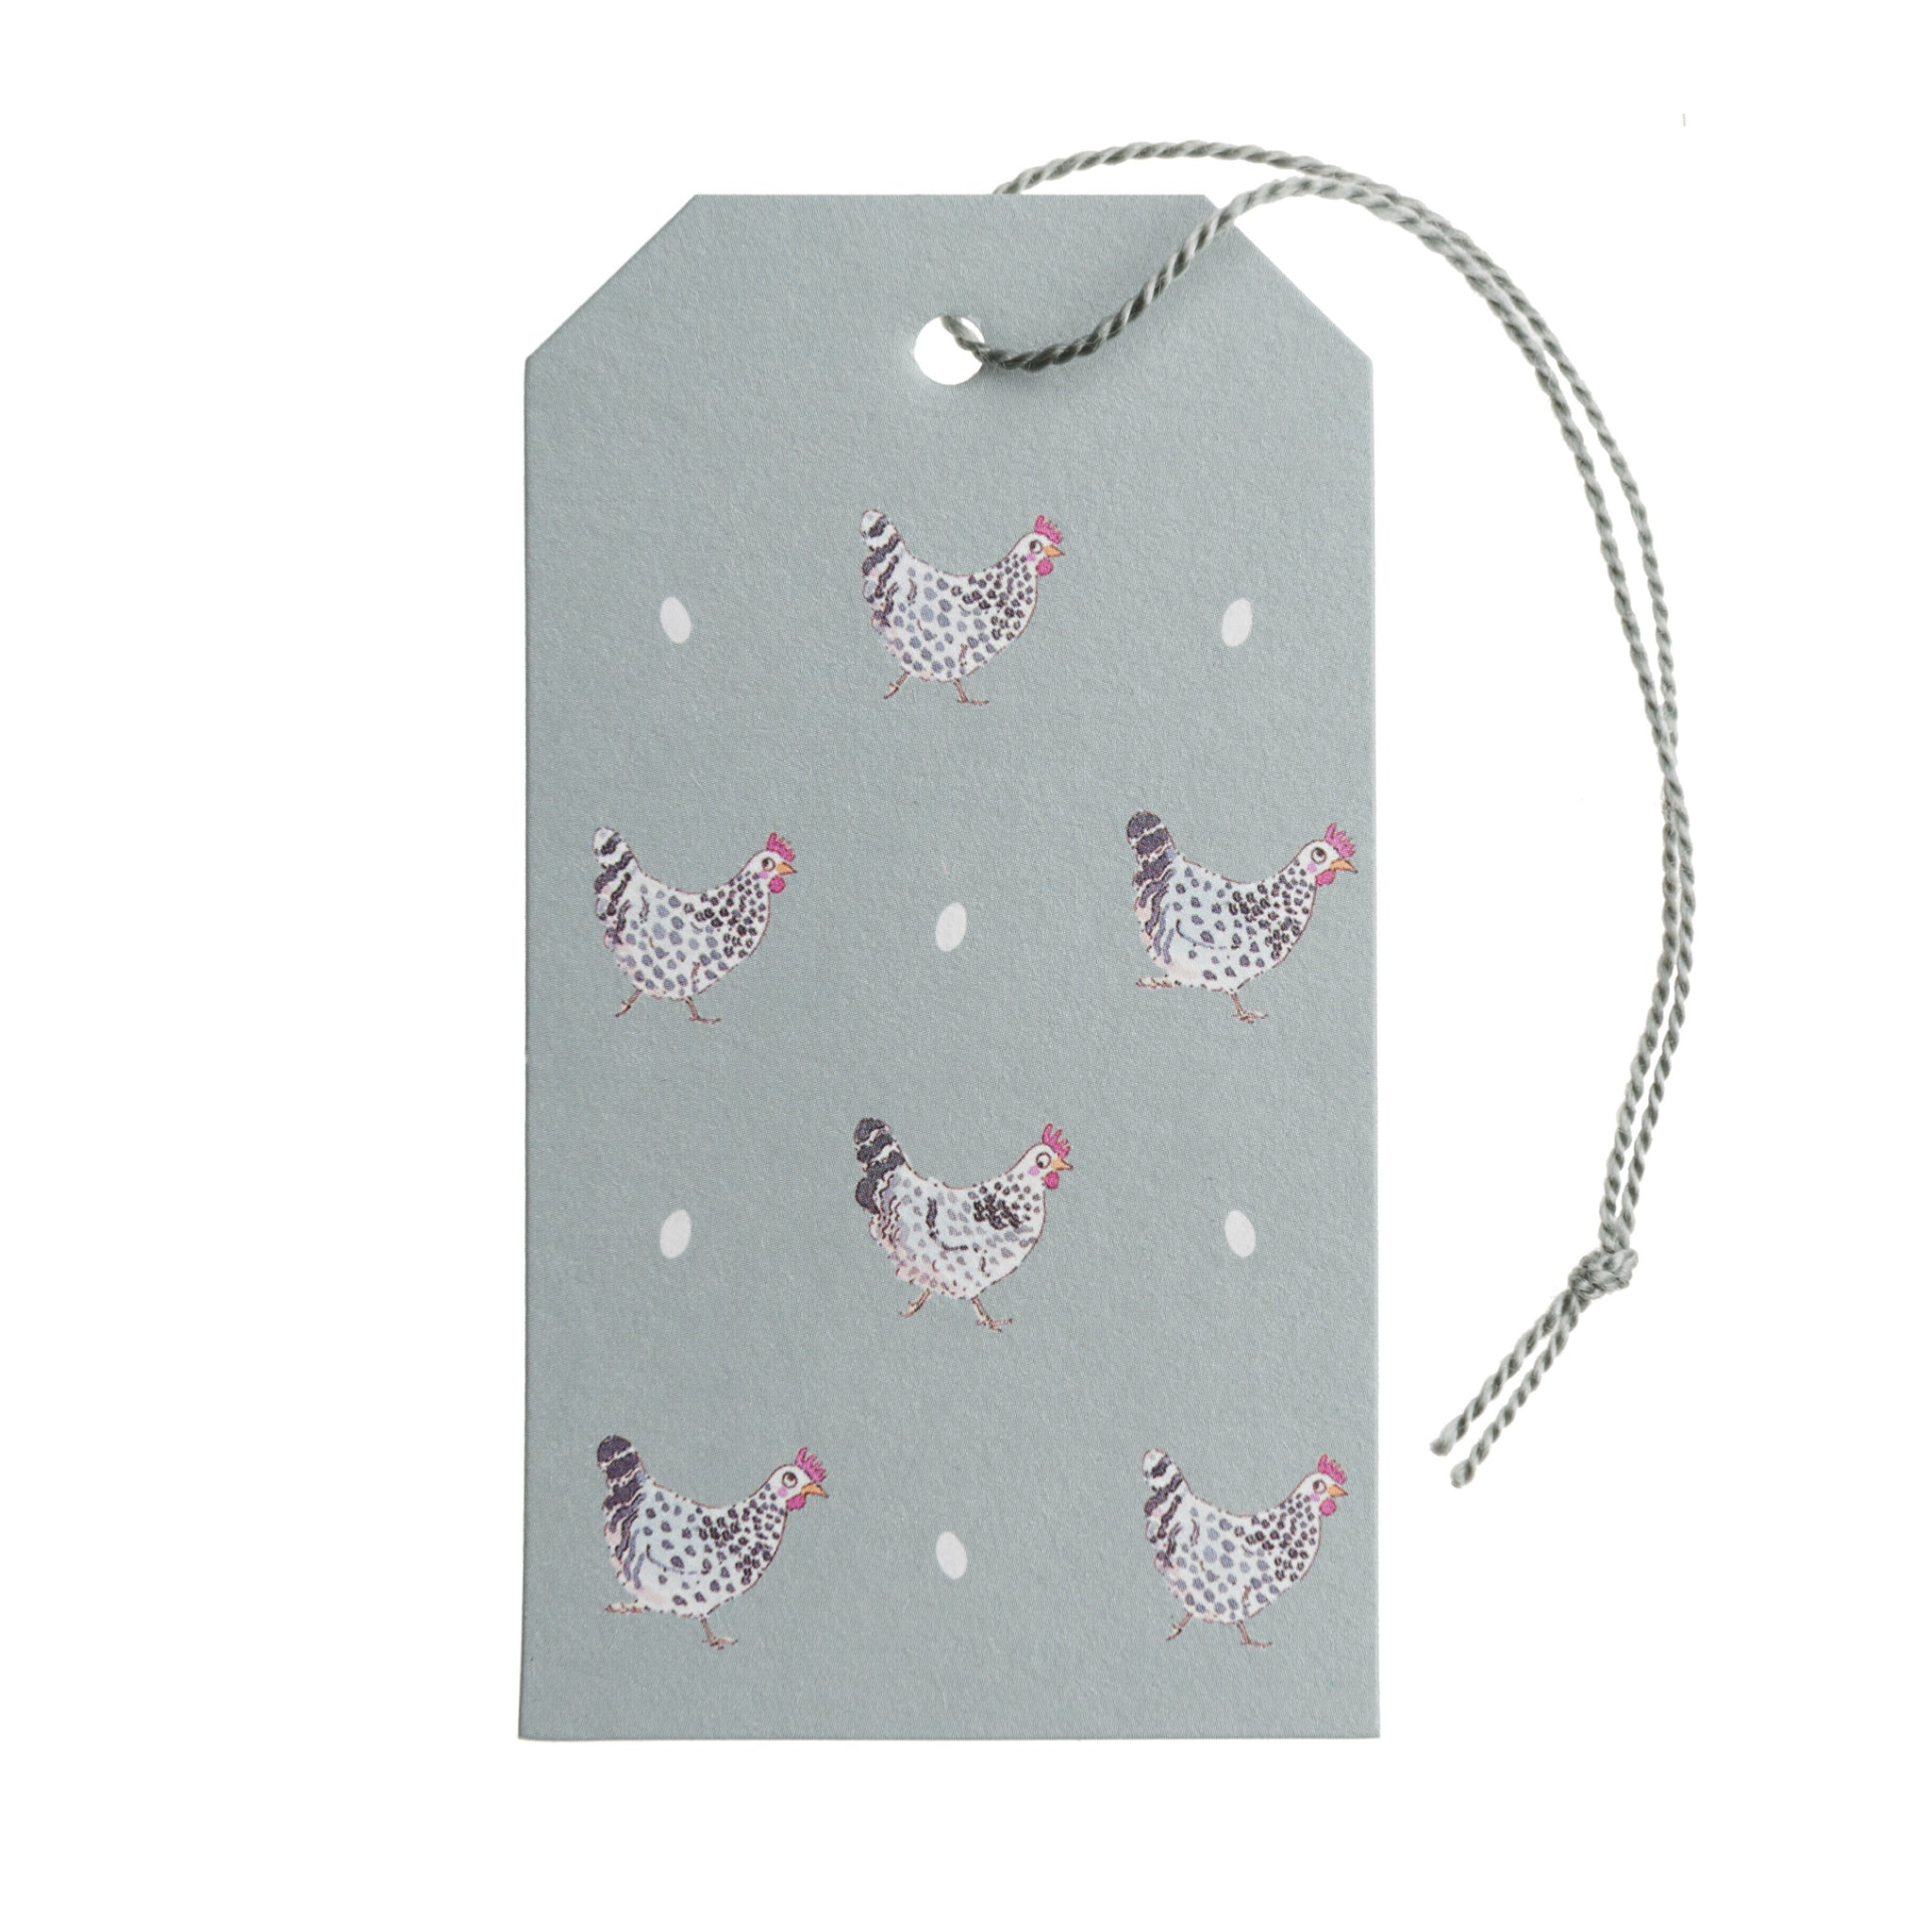 Chicken Gift Tags - Set of 10